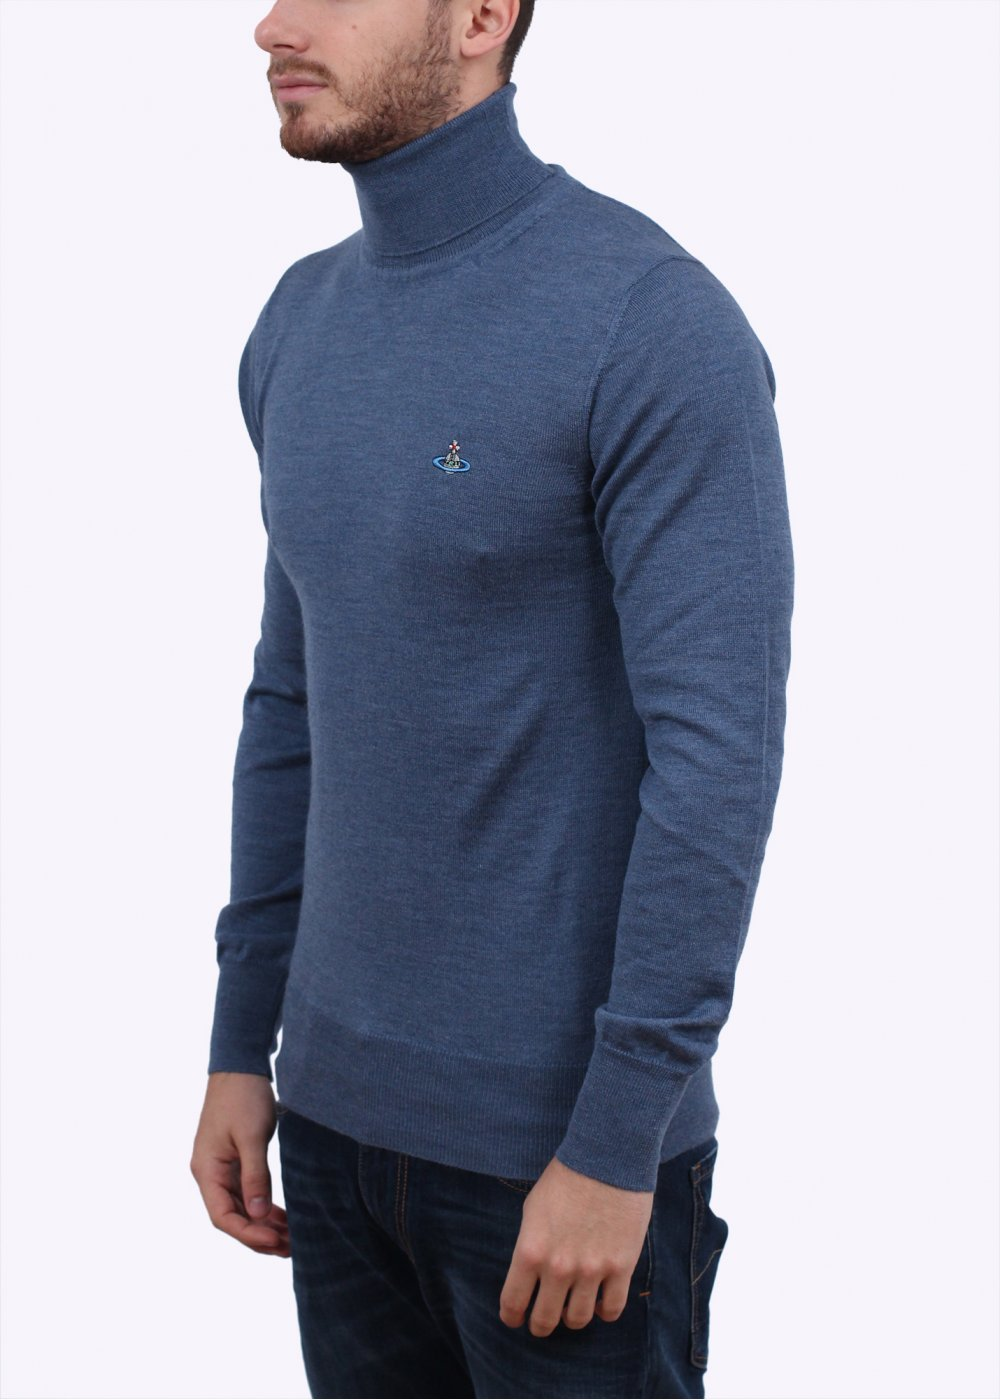 Find great deals on eBay for Mens Roll Neck Sweater in Sweaters and Clothing for Men. Shop with confidence. Skip to main content. eBay: Shop by category. Shop by category. Men Roll Turtle Neck Jumper Wool Blend Knitted Thermal Sweater Pullover Woolwork. $ Buy It Now. Free Shipping.